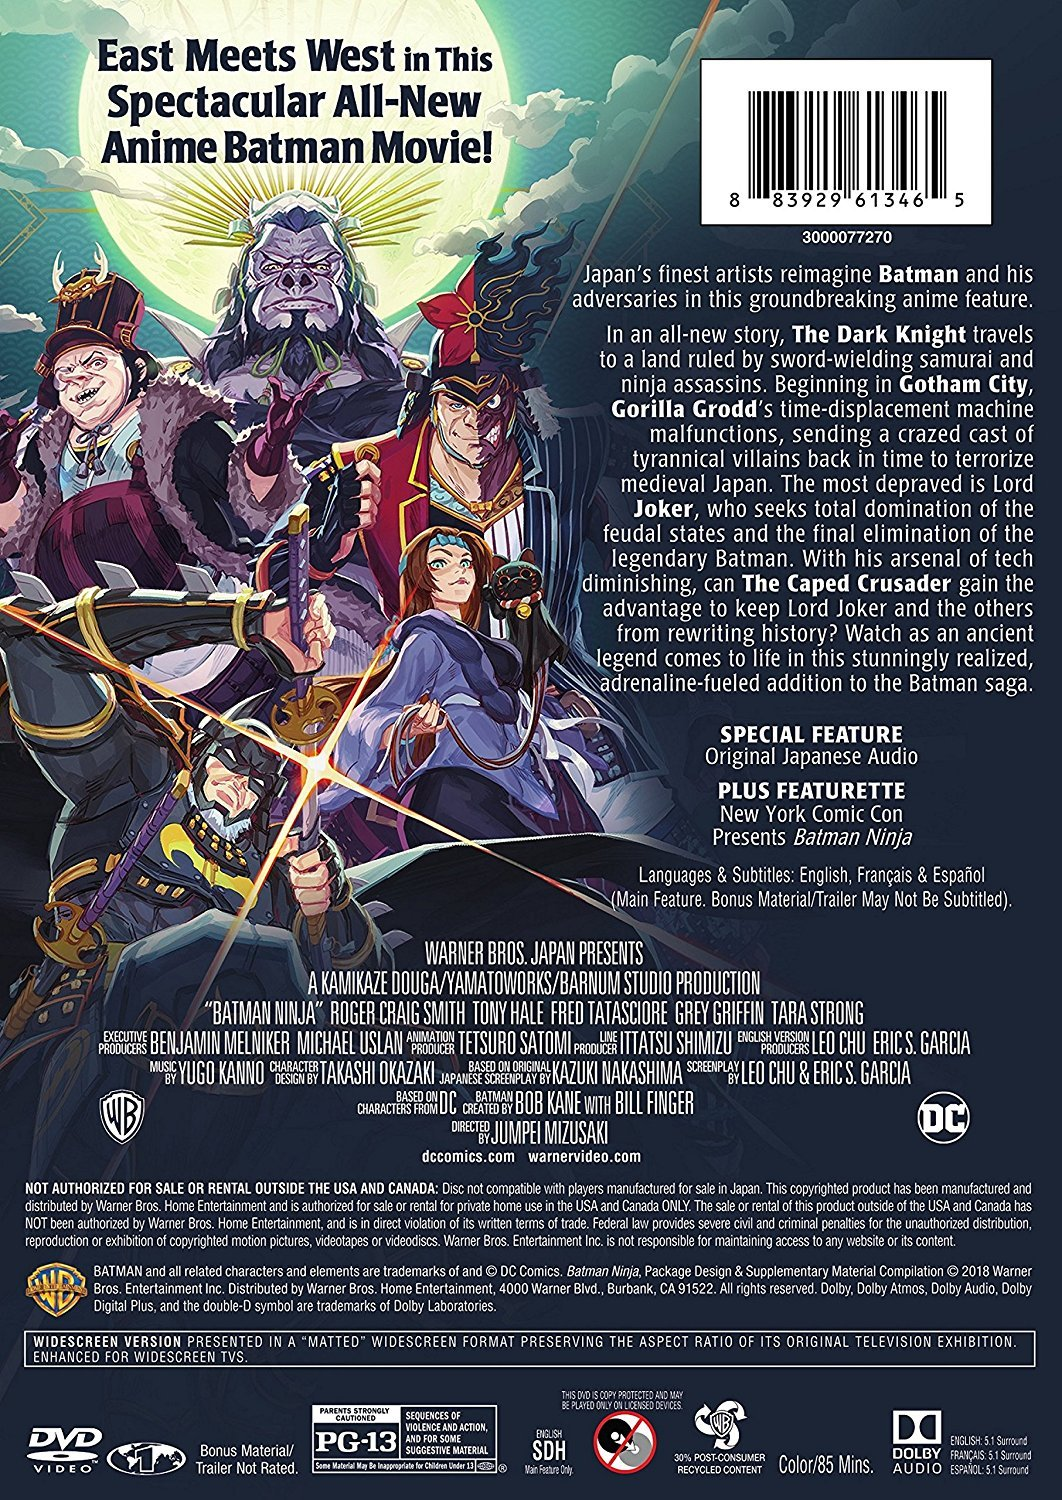 Amazon.com: Batman Ninja DVD: Movies & TV